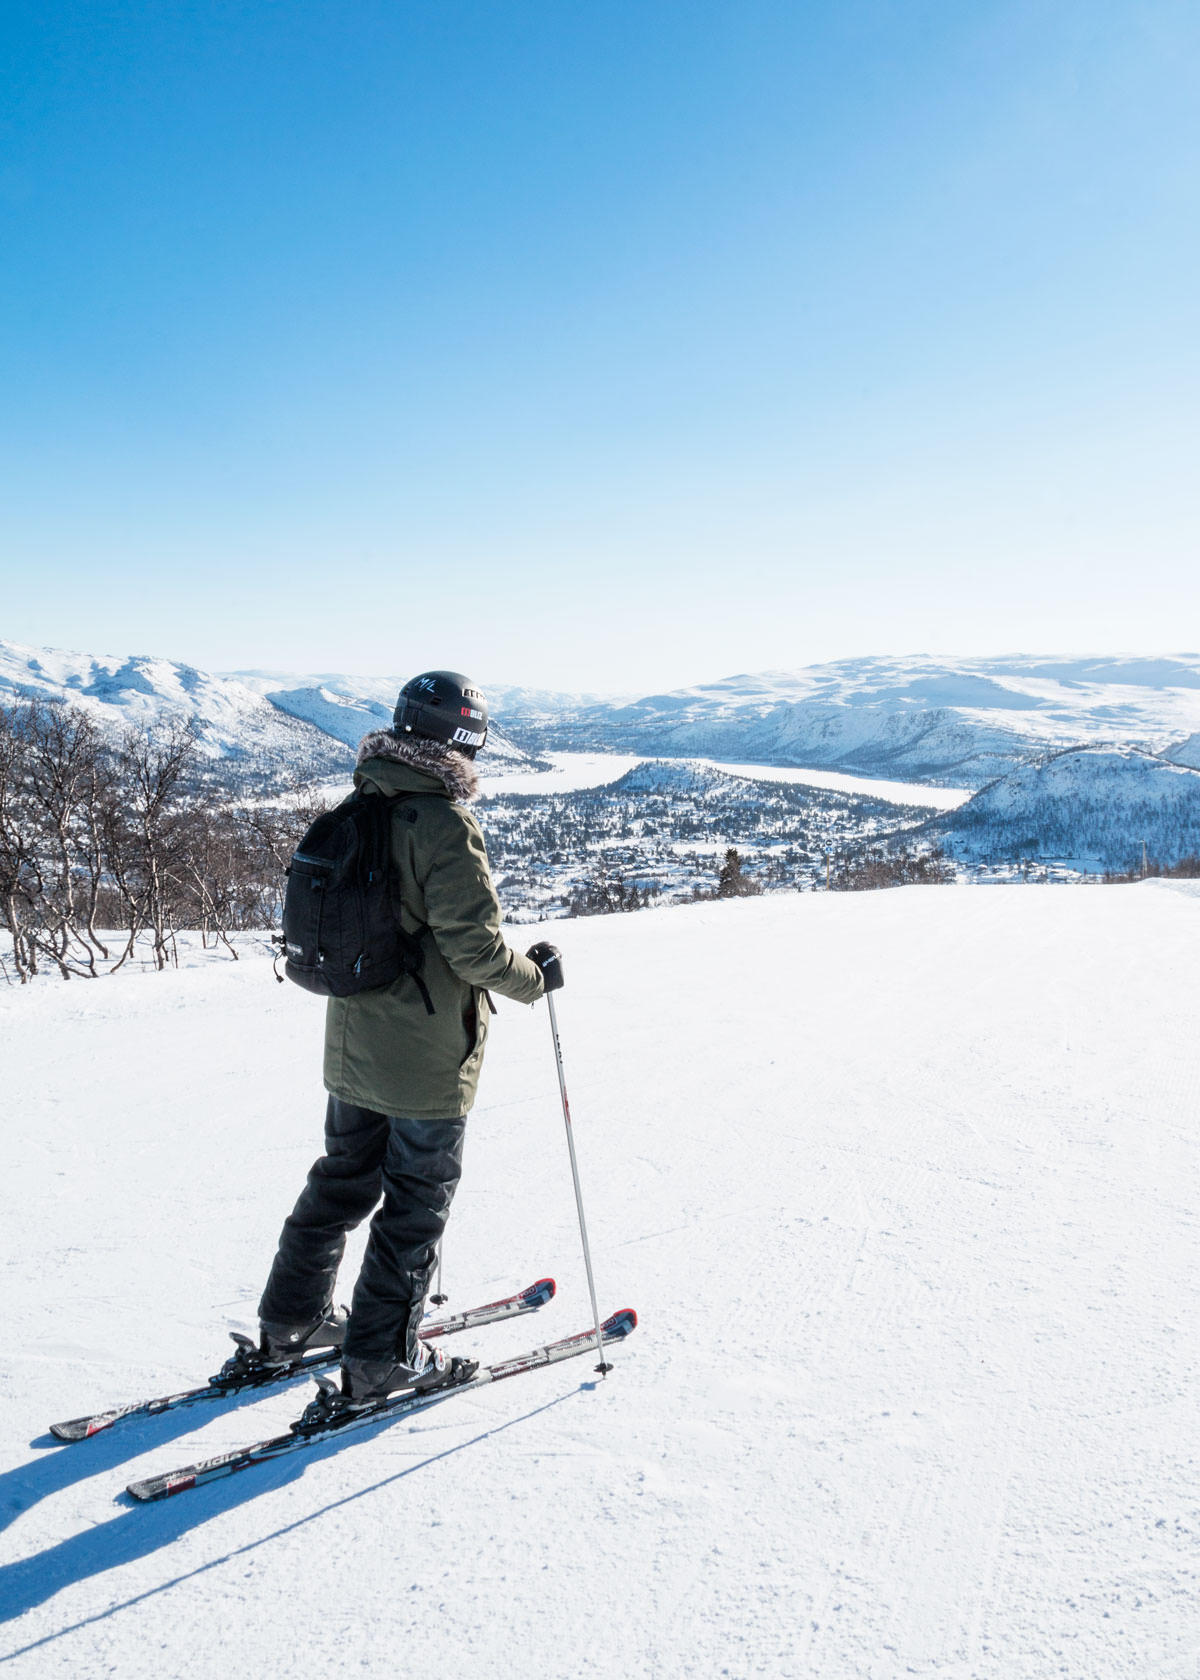 Skiing in Norway - and 5 other winter adventures in the mountain village Hovden